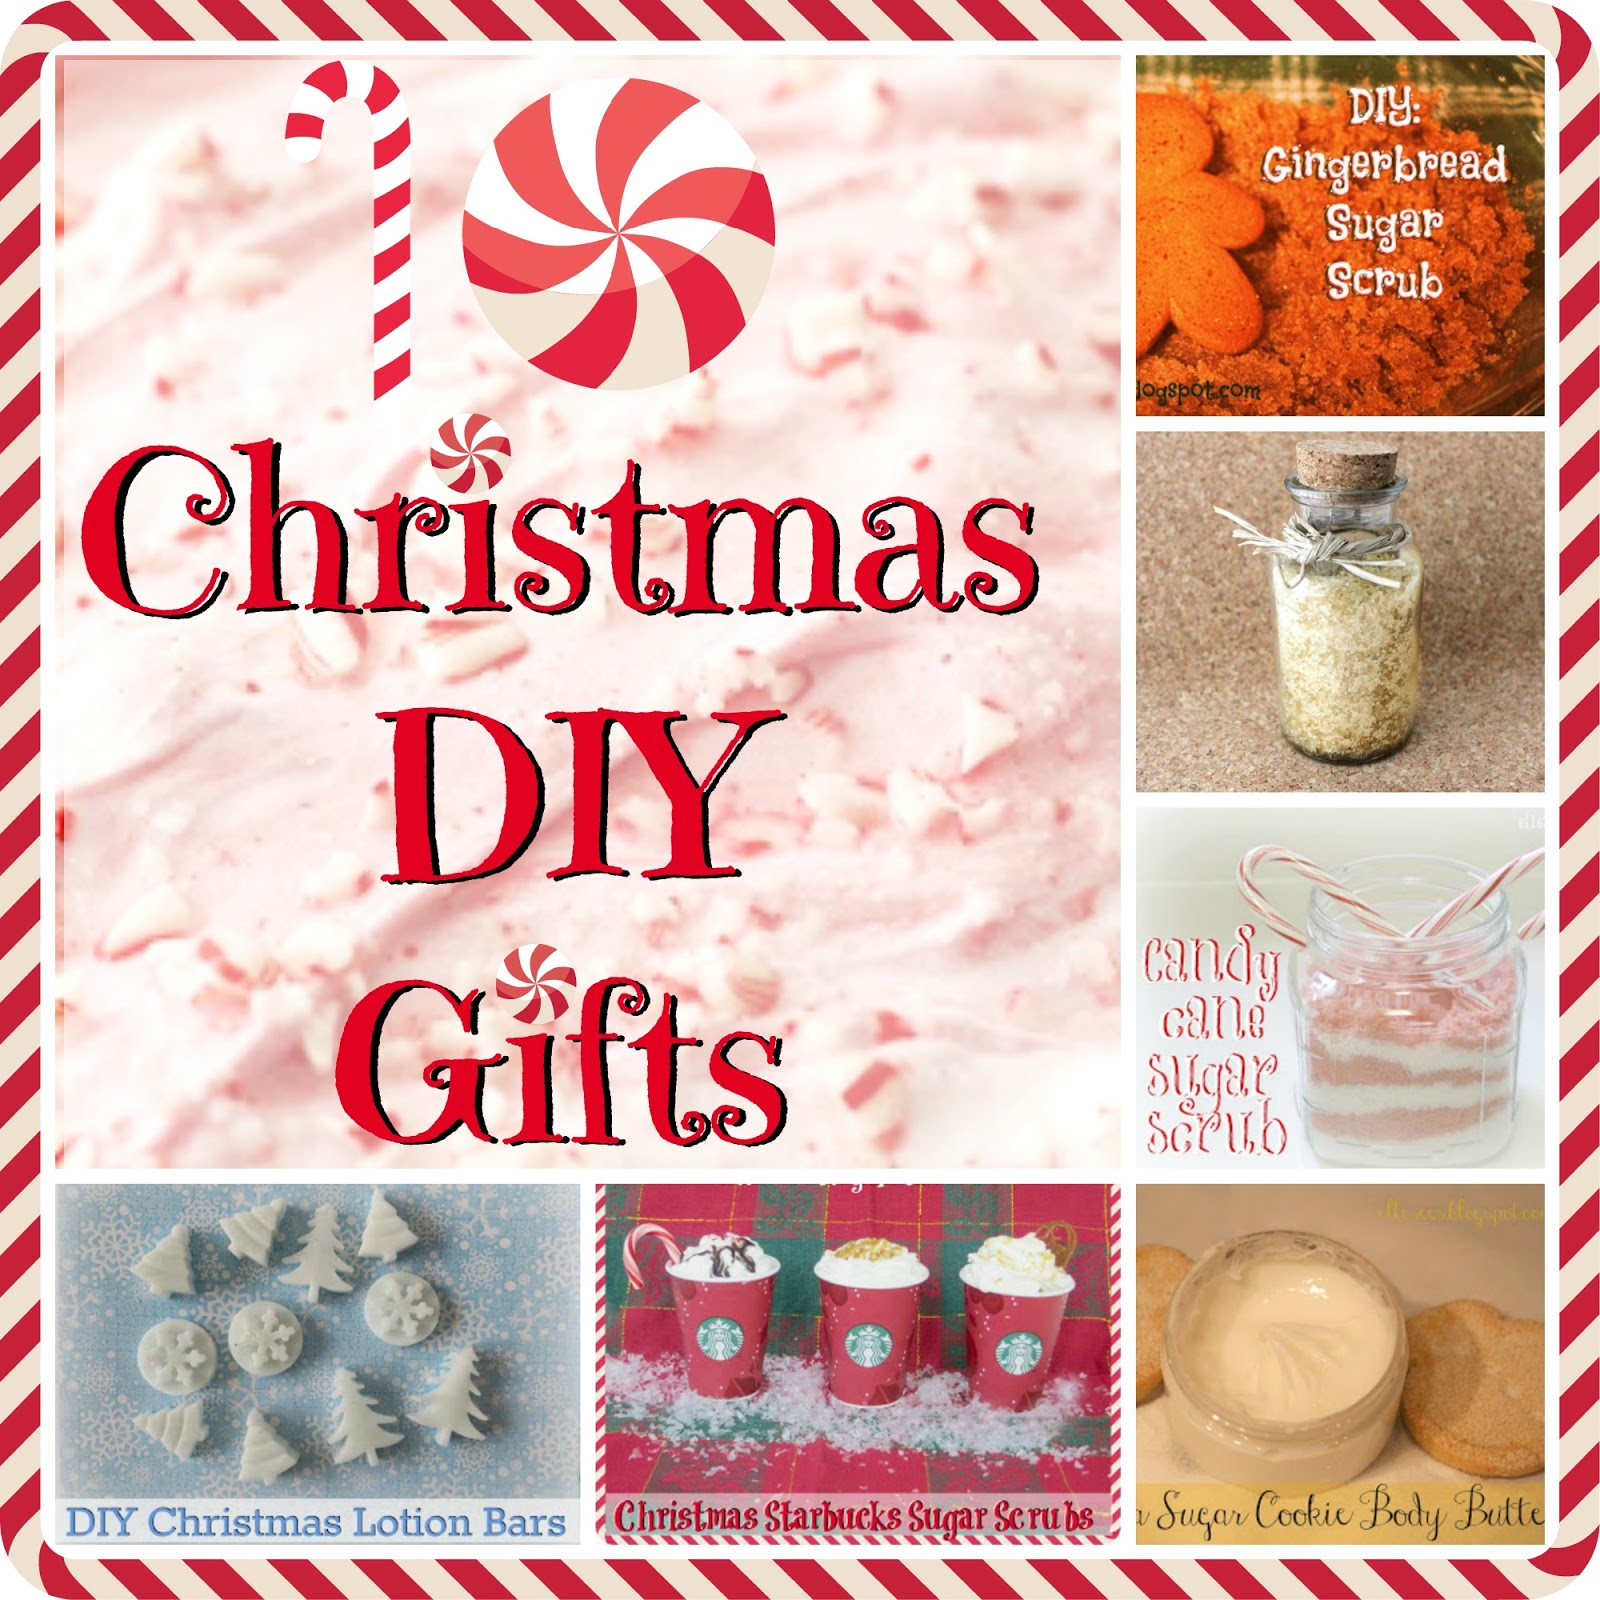 Elle Sees|| Beauty Blogger in Atlanta: 10 Christmas DIY Gifts